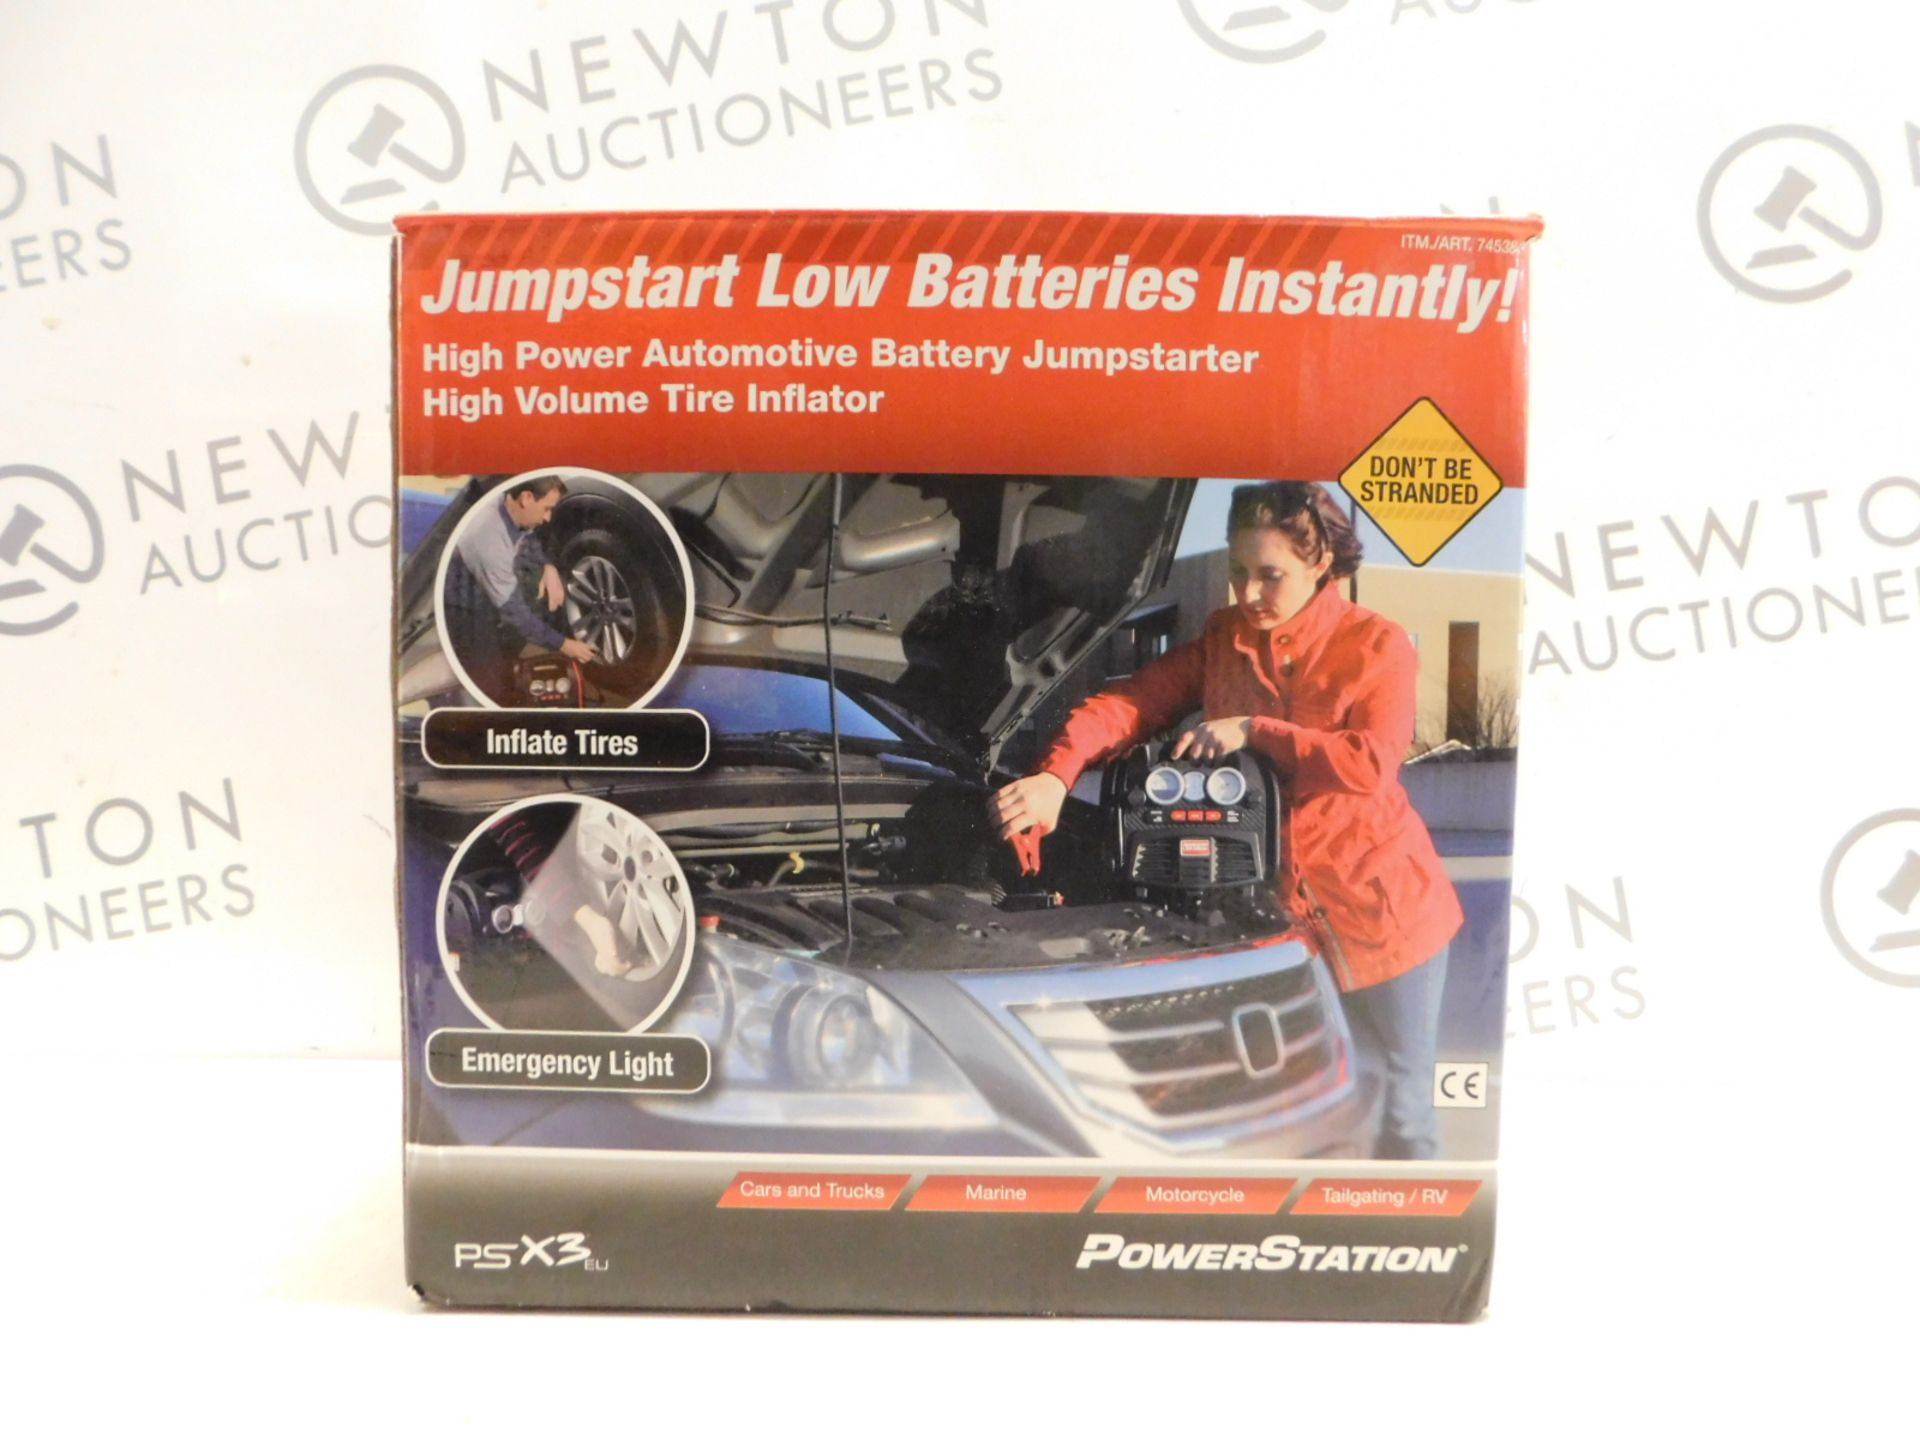 Lot 517 - 1 BOXED POWERSTATION PSX3 BATTERY JUMPSTARTER WITH BUILT IN LIGHT AND COMPRESSOR RRP £159